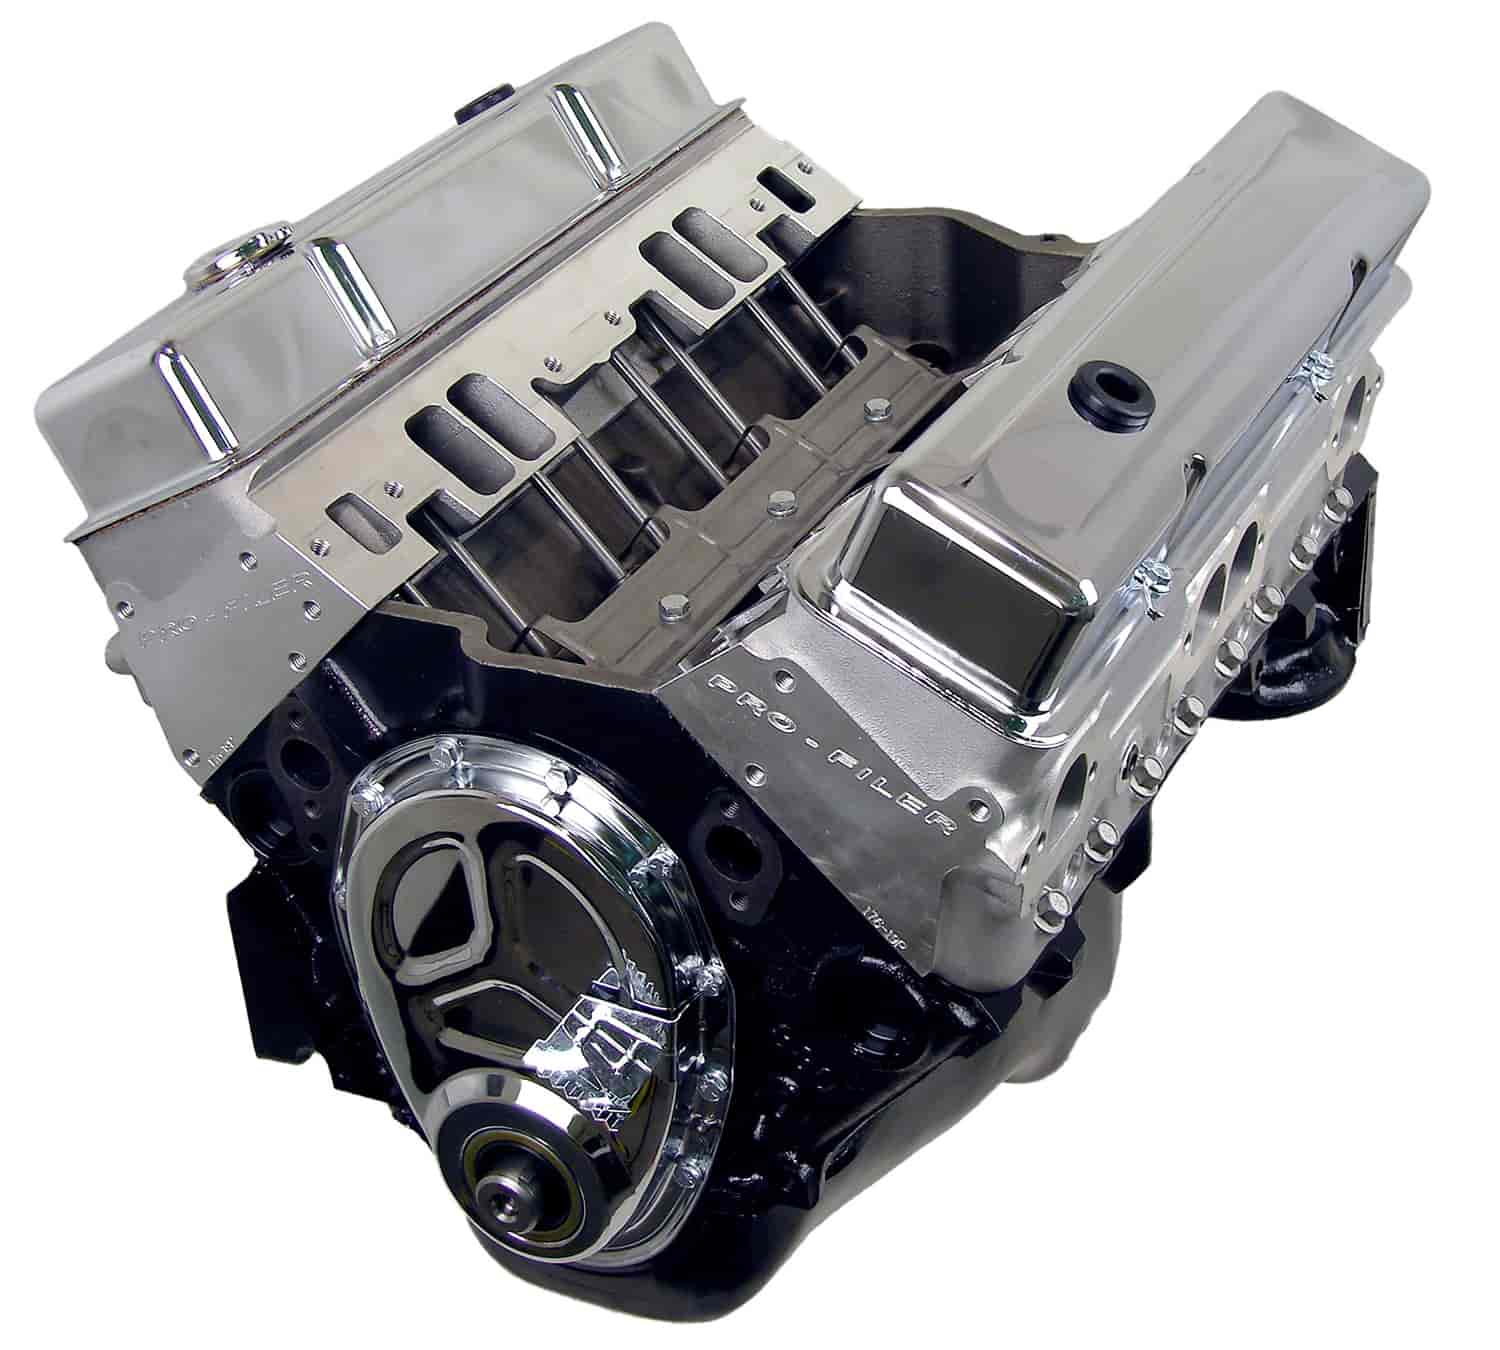 Atk engines hp89 high performance crate engine small block chevy atk engines hp89 malvernweather Choice Image